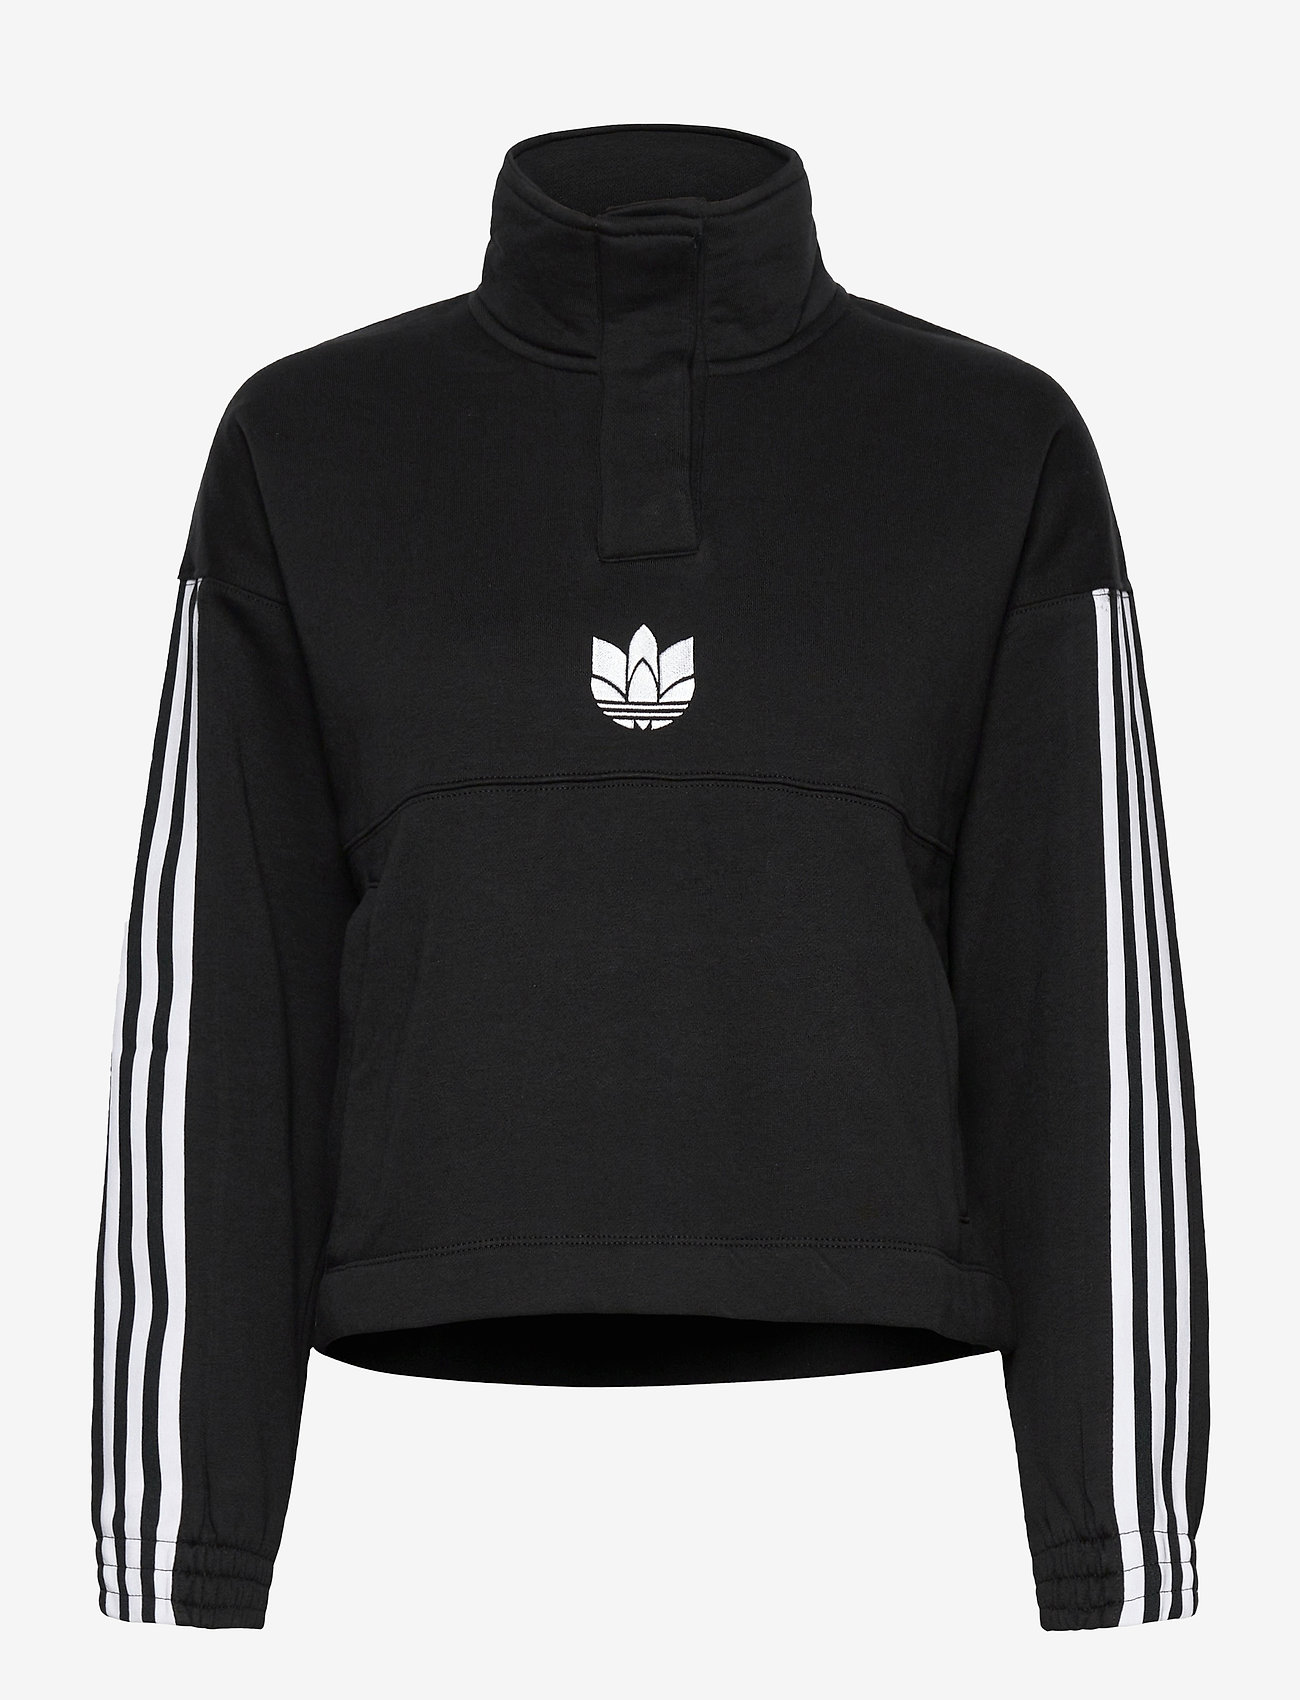 adidas Originals - Adicolor 3D Trefoil Fleece Half-Zip Sweatshirt W - sweatshirts - black - 1